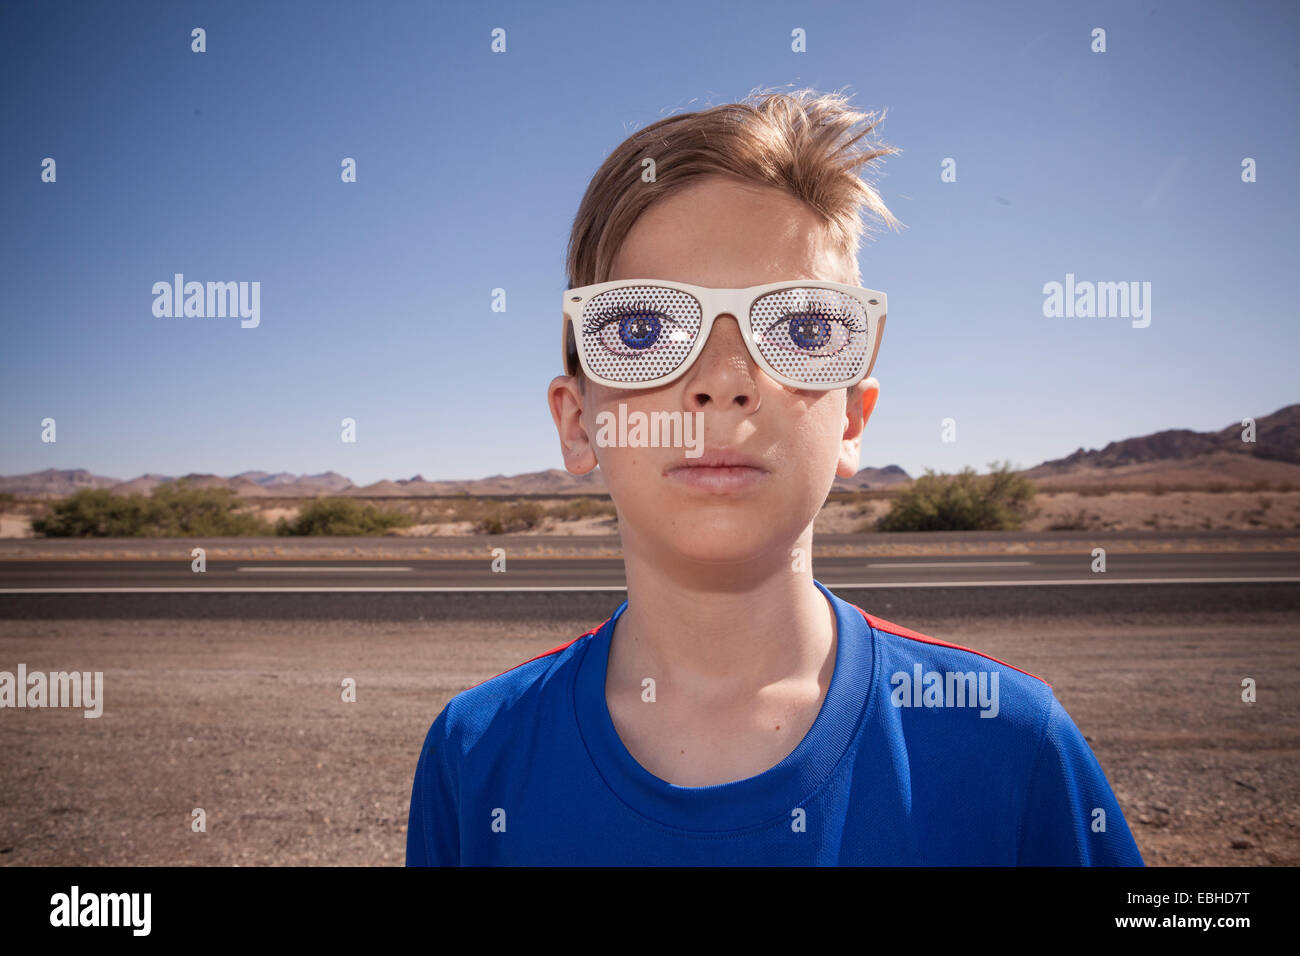 Portrait of boy on roadside wearing spectacles with staring eyes - Stock Image